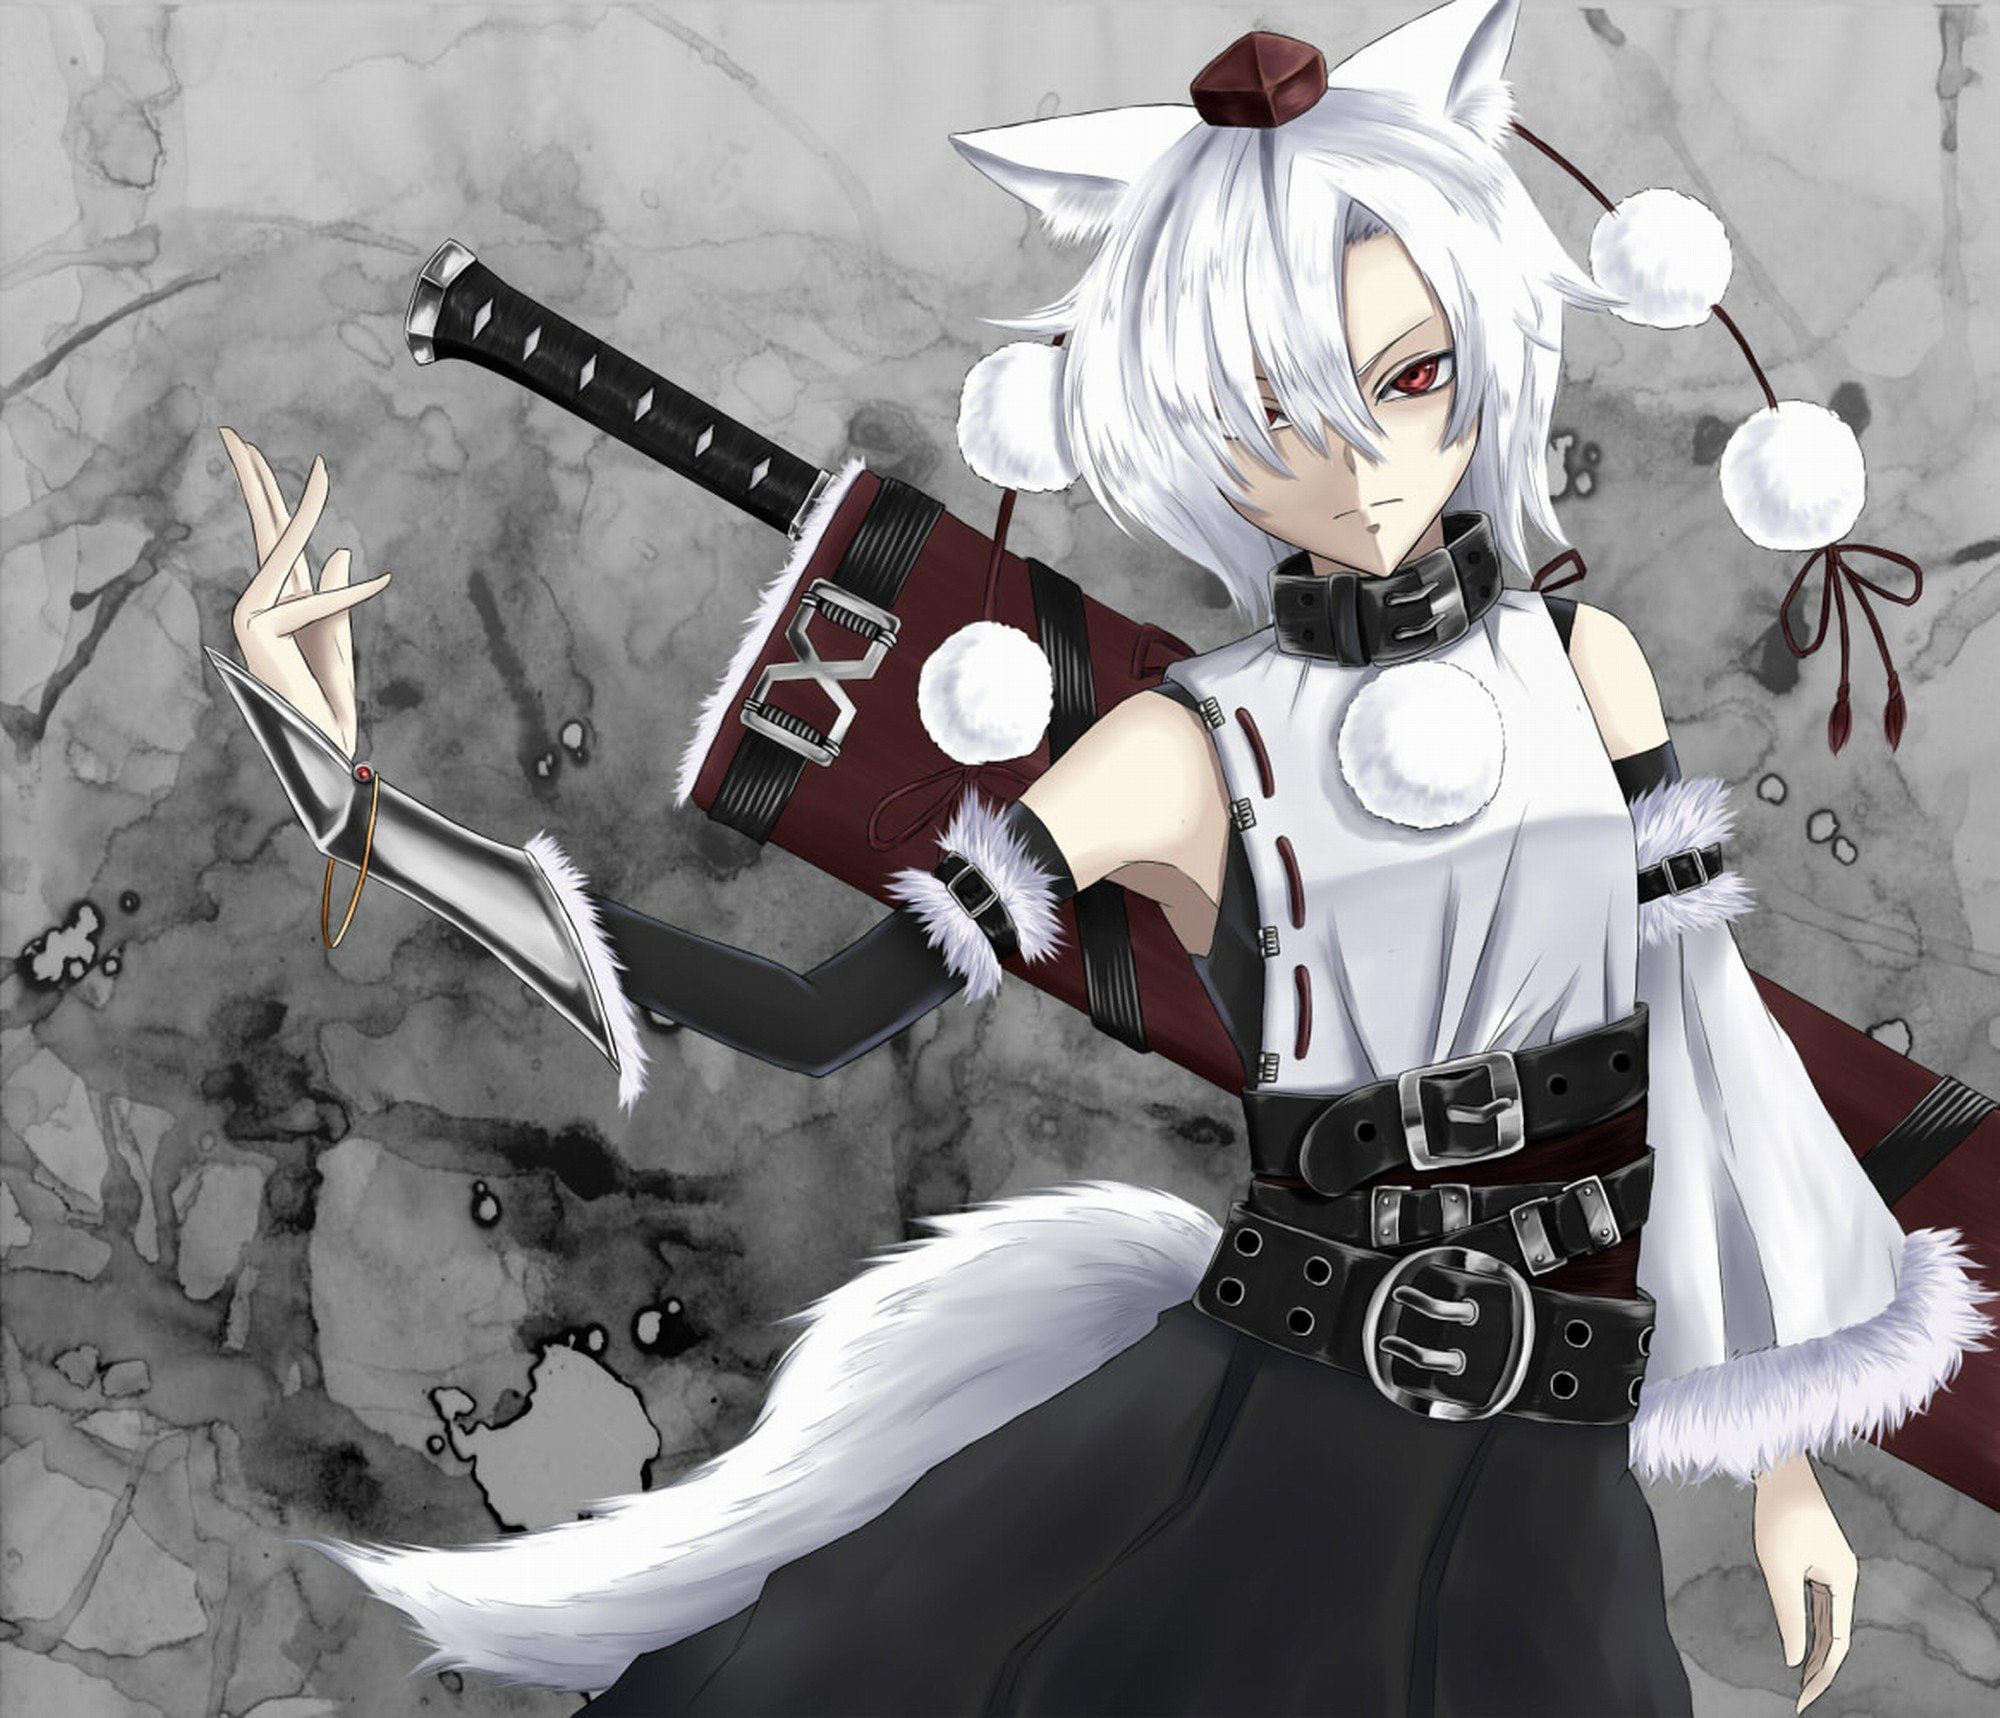 Fashion week Haired white anime boy with sword for woman